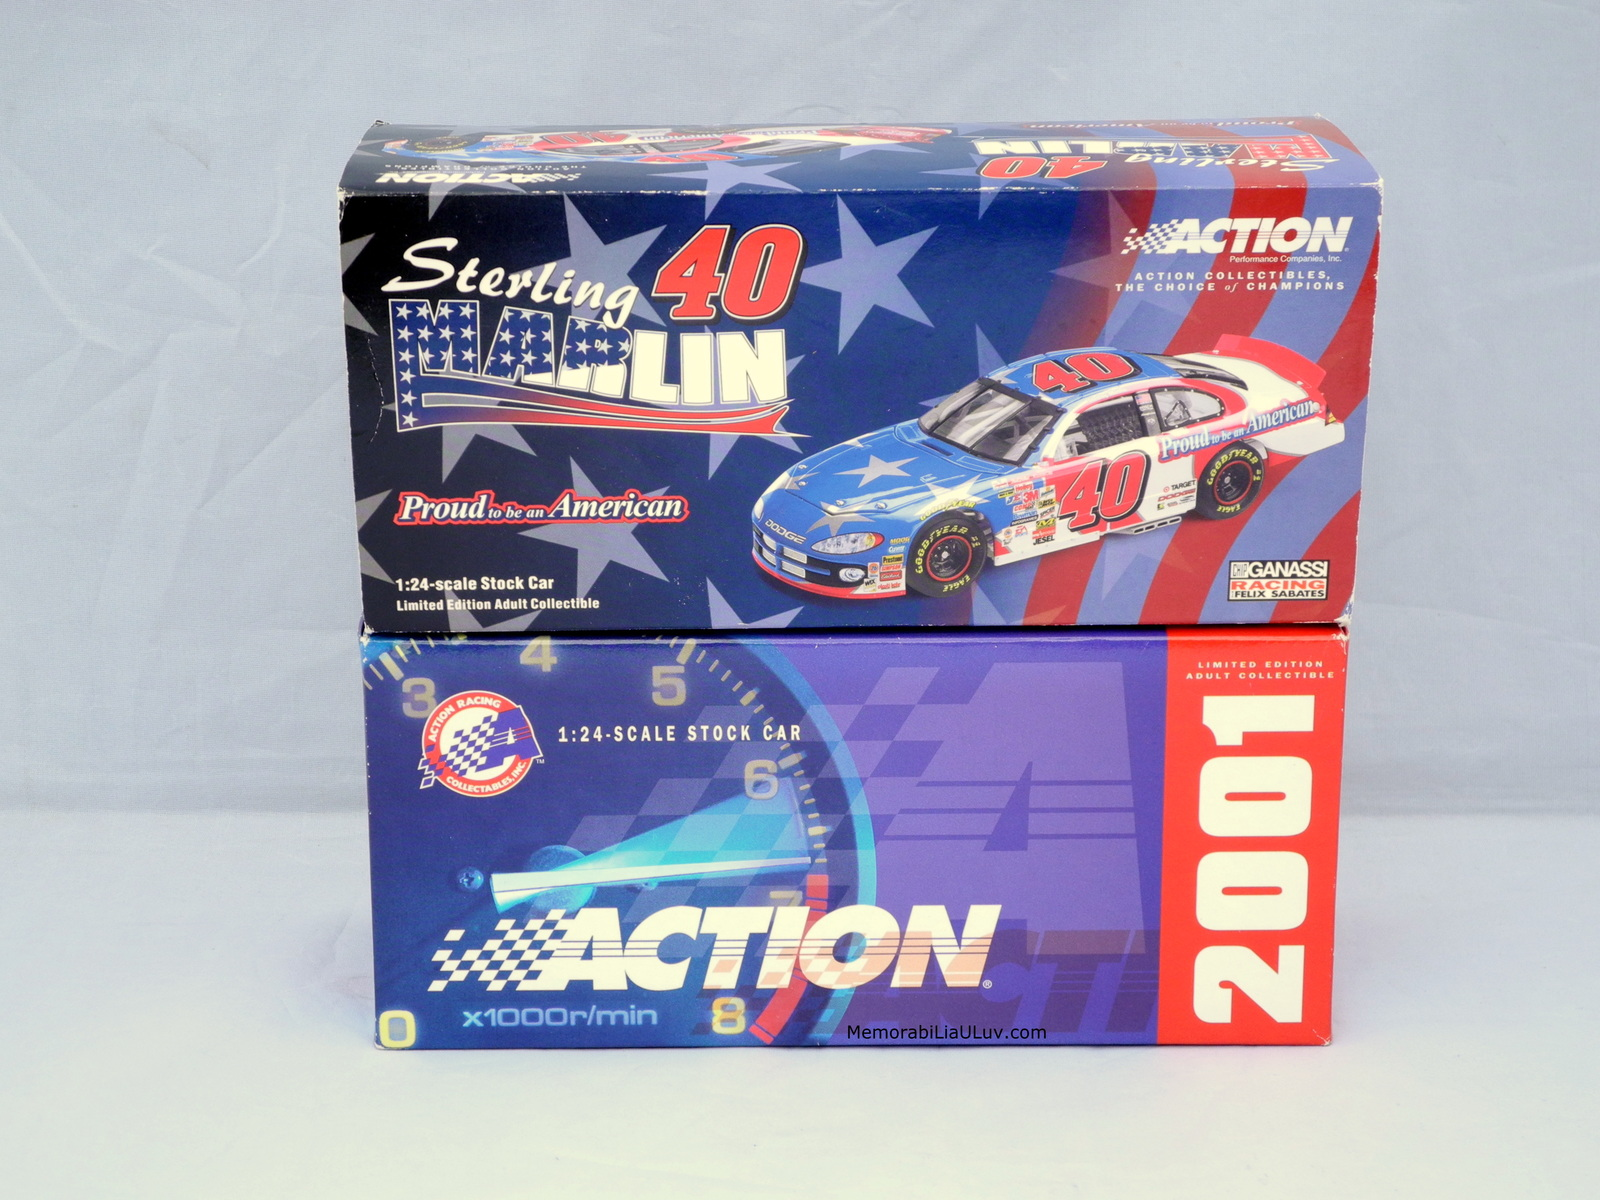 Sterling Marlin Proud to Be an American Signed 1:24 Diecast Model Nascar image 5